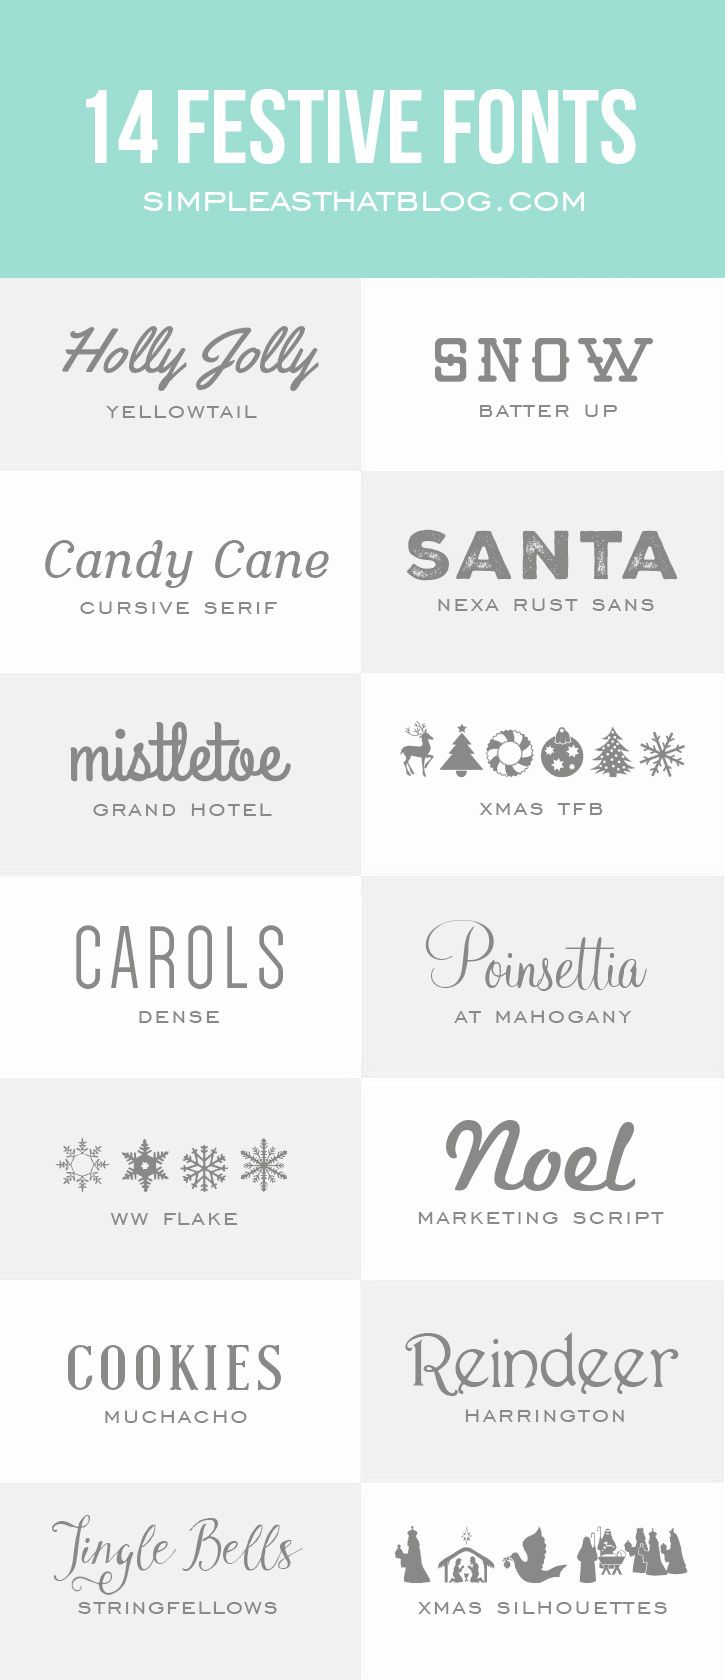 14 Festive Fonts for the Holidays - simple as that